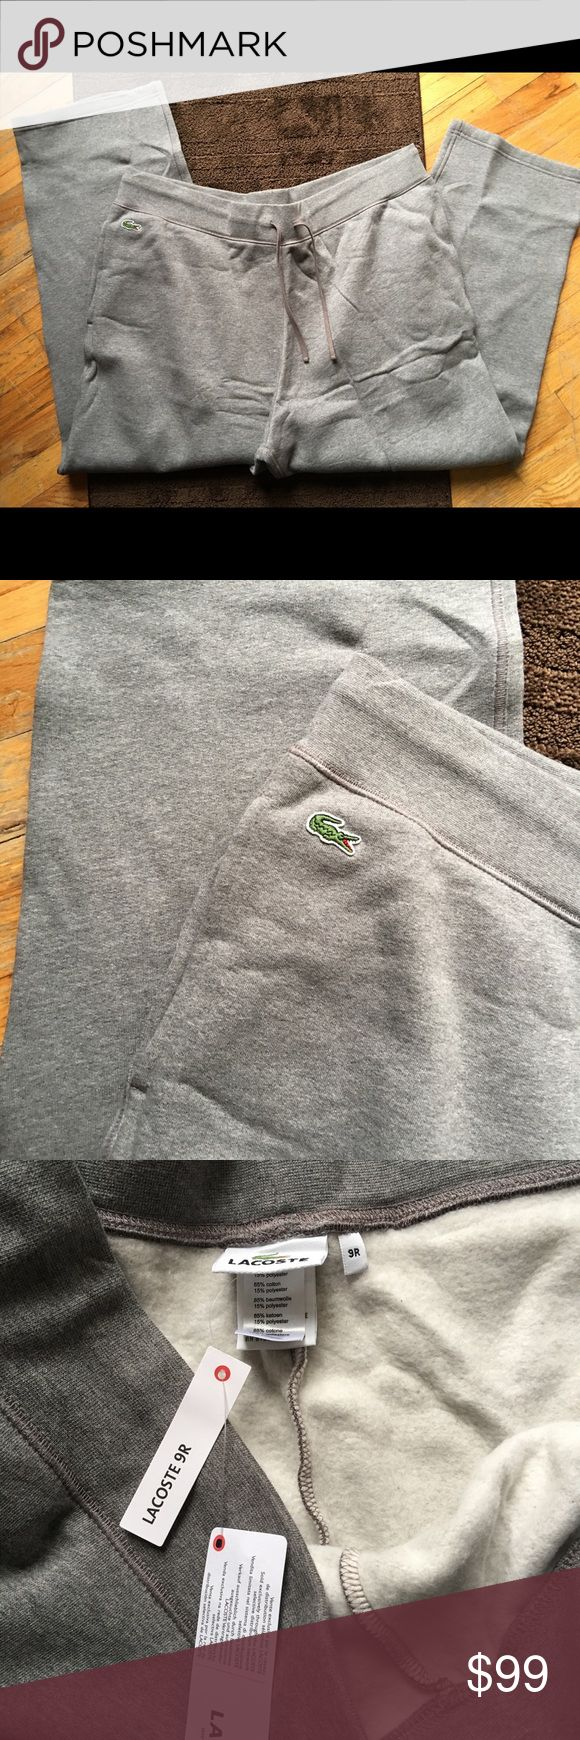 MENS LACOSTE $135 2XL GRAY SWEAT PANTS NWT Jogging pants Lacoste Pants Sweatpants & Joggers